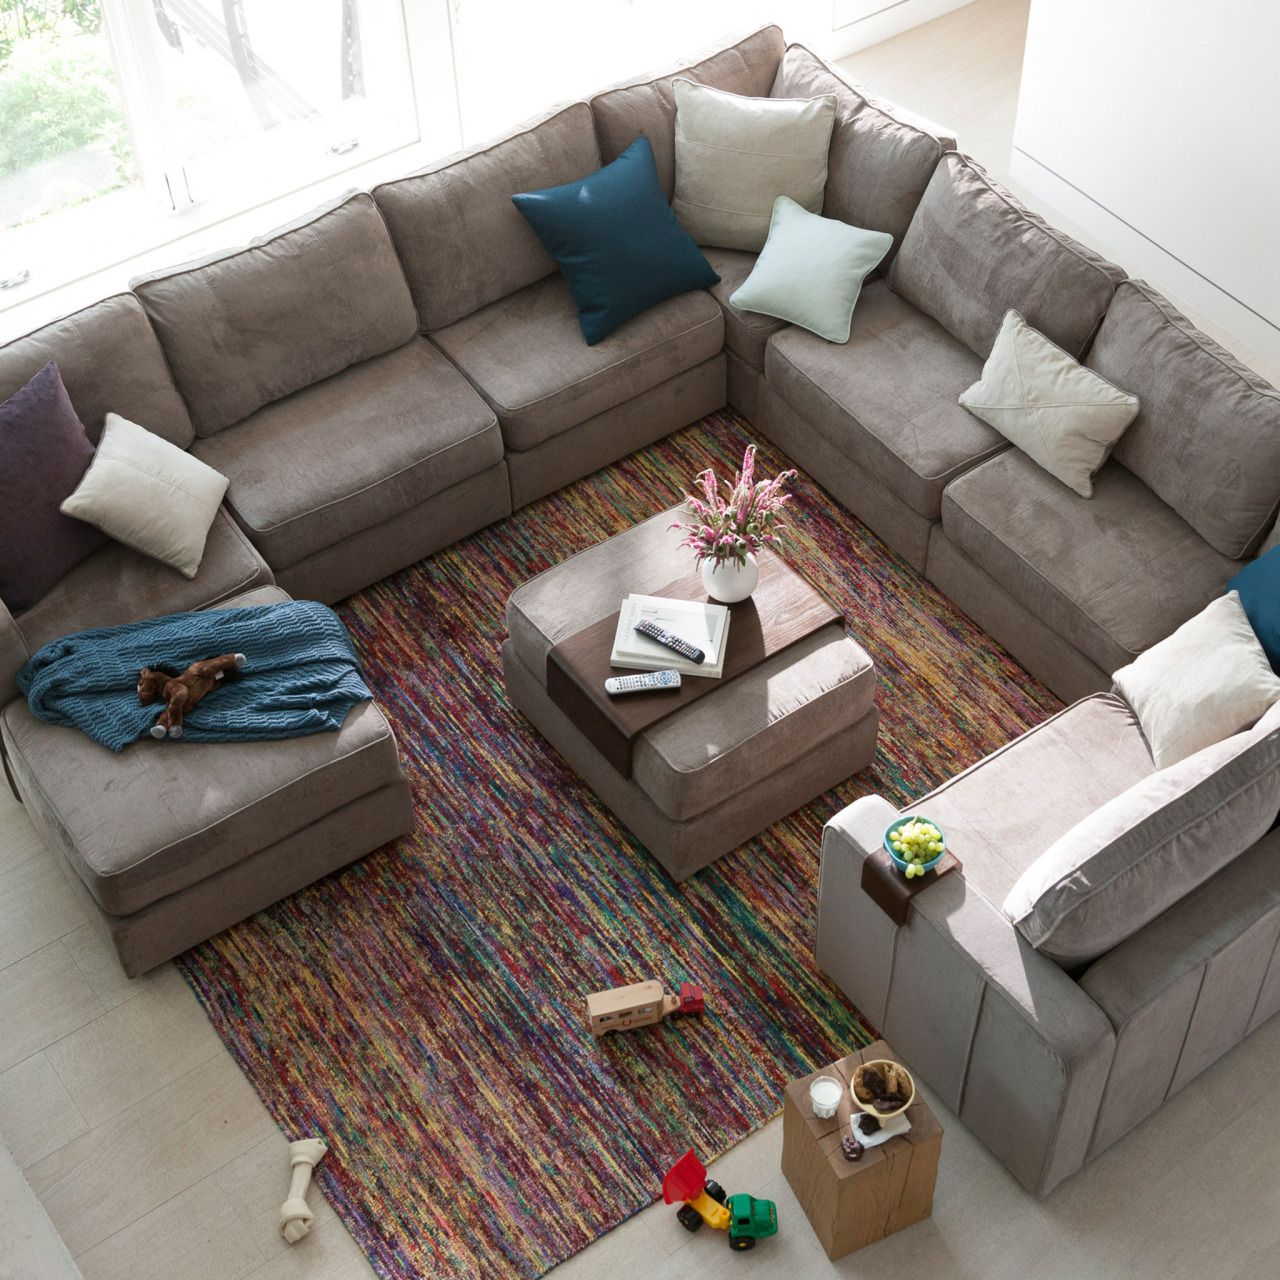 Love Your Sofa Macclesfield Modernica Lovesac  We Make Sactionals The Most Adaptable Couch In